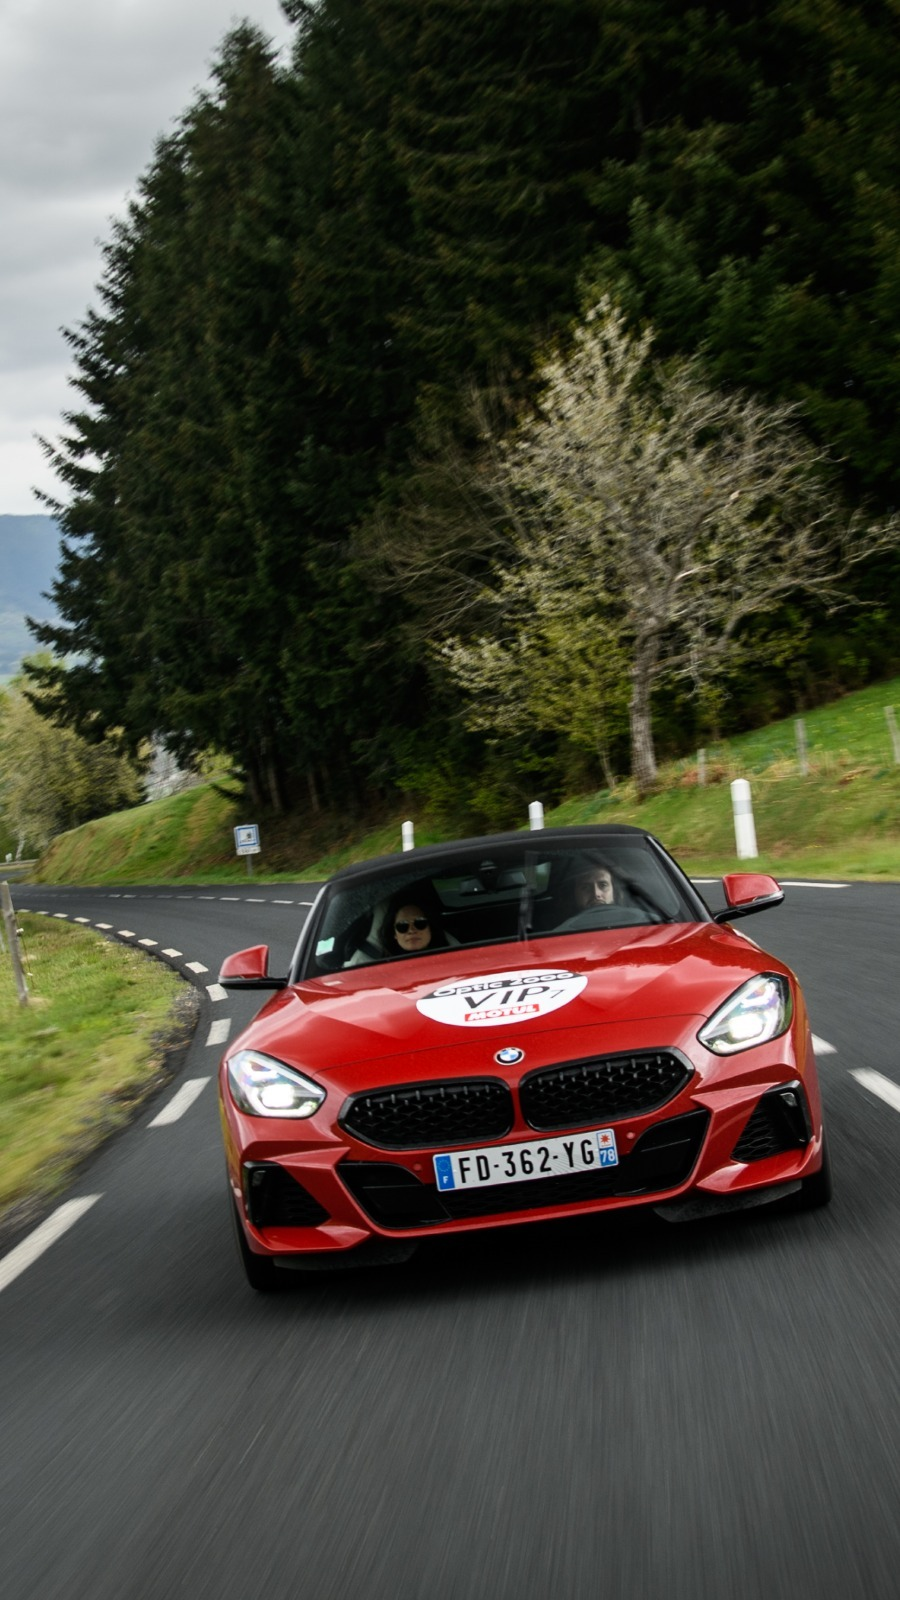 bmw z4 g29 road road rug cars roadrugcars brothers car voiture auto automobile